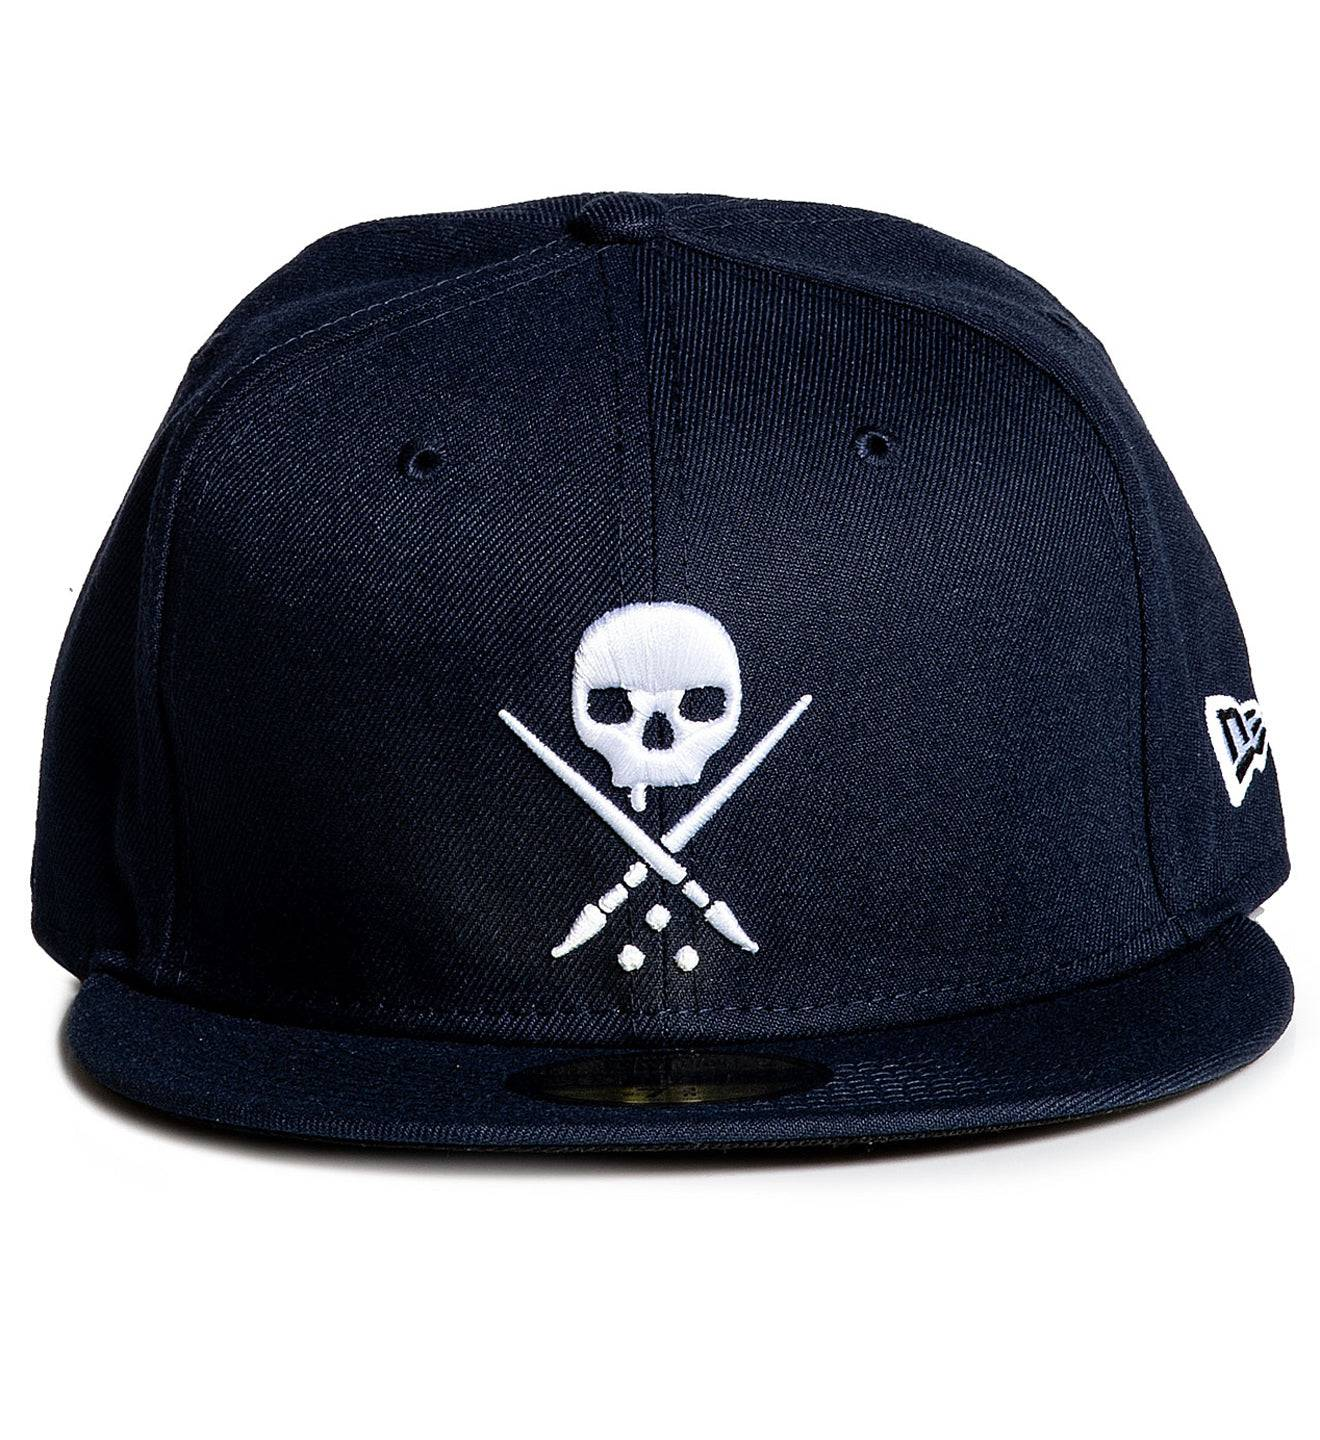 Mens Fitted Badge Navy, NAVY / 81/4